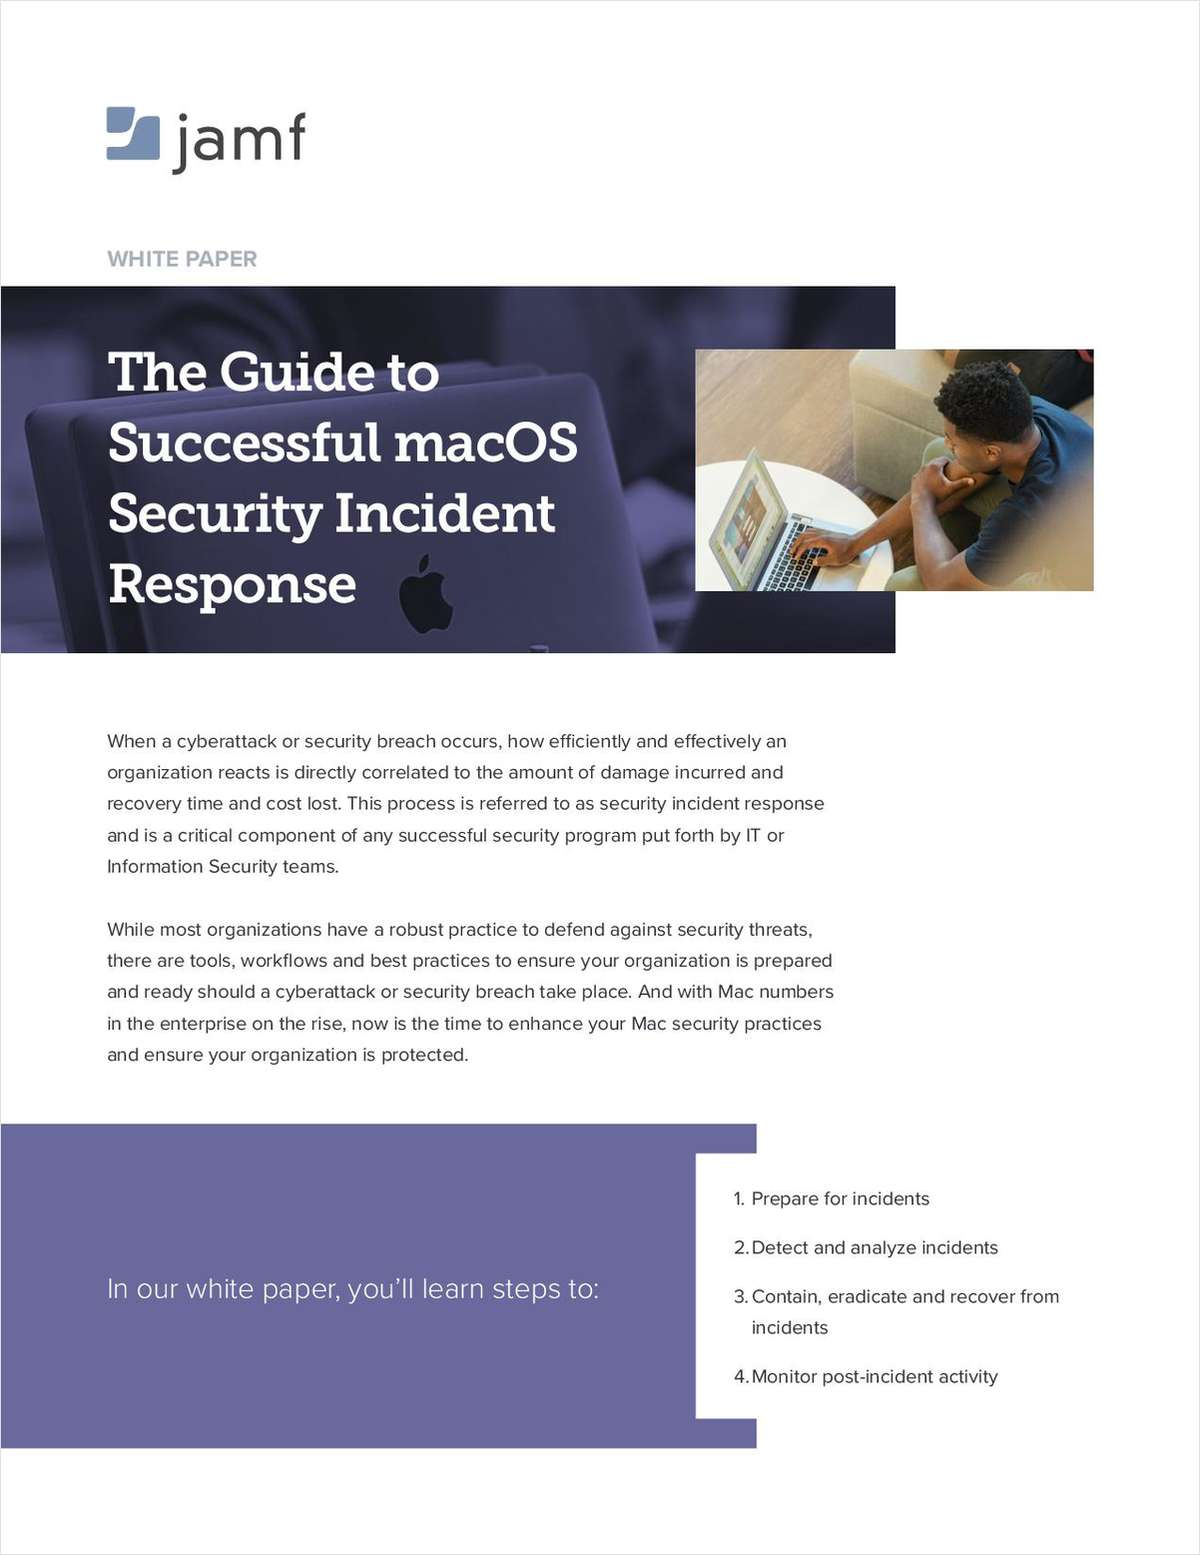 The Guide to Successful macOS Security Incident Response